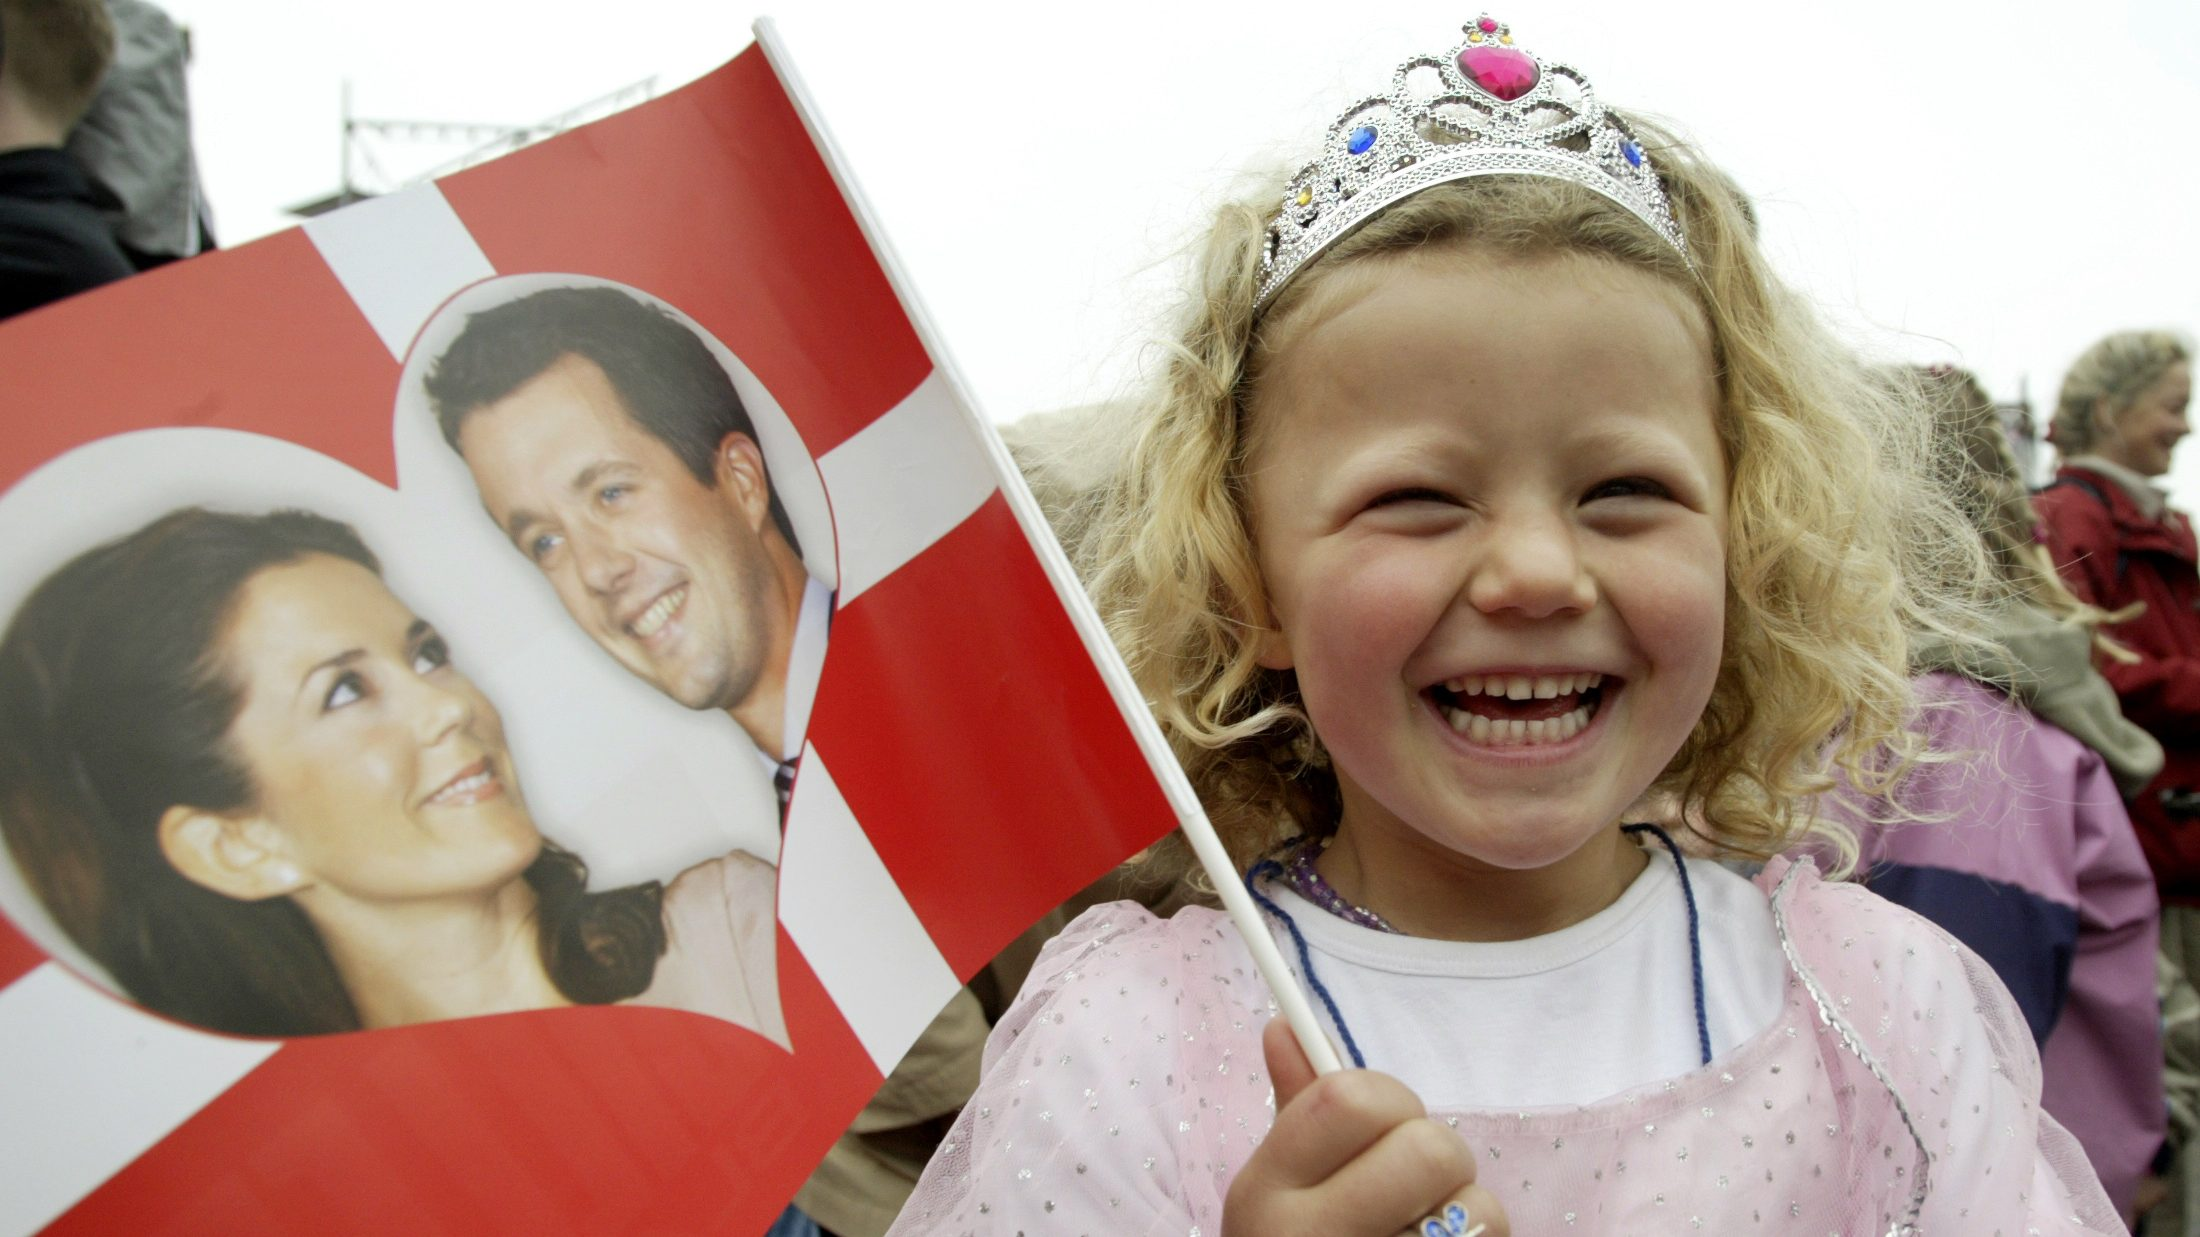 A GIRL DRESSED AS A PRINCESS WAVES WITH A FLAG SHOWING THE ROYAL COUPLE DANISH CROWN PRINCE FREDIK AND HIS AUSTRALIAN FIANCE MARY DONALDSON IN COPENHAGEN.  A girl dressed as a princess waves a flag showing Danish Crown Prince Frederik and his Australian fiance Mary Donaldson outside the Copenhagen cityhall, May 12. Frederik, the 35-year-old heir to the throne of one of Europe's oldest monarchies will marry 32-year-old lawyer Mary Donaldson on Friday May 14, 2004, the first Australian to marry into a European royal house that still has its throne.